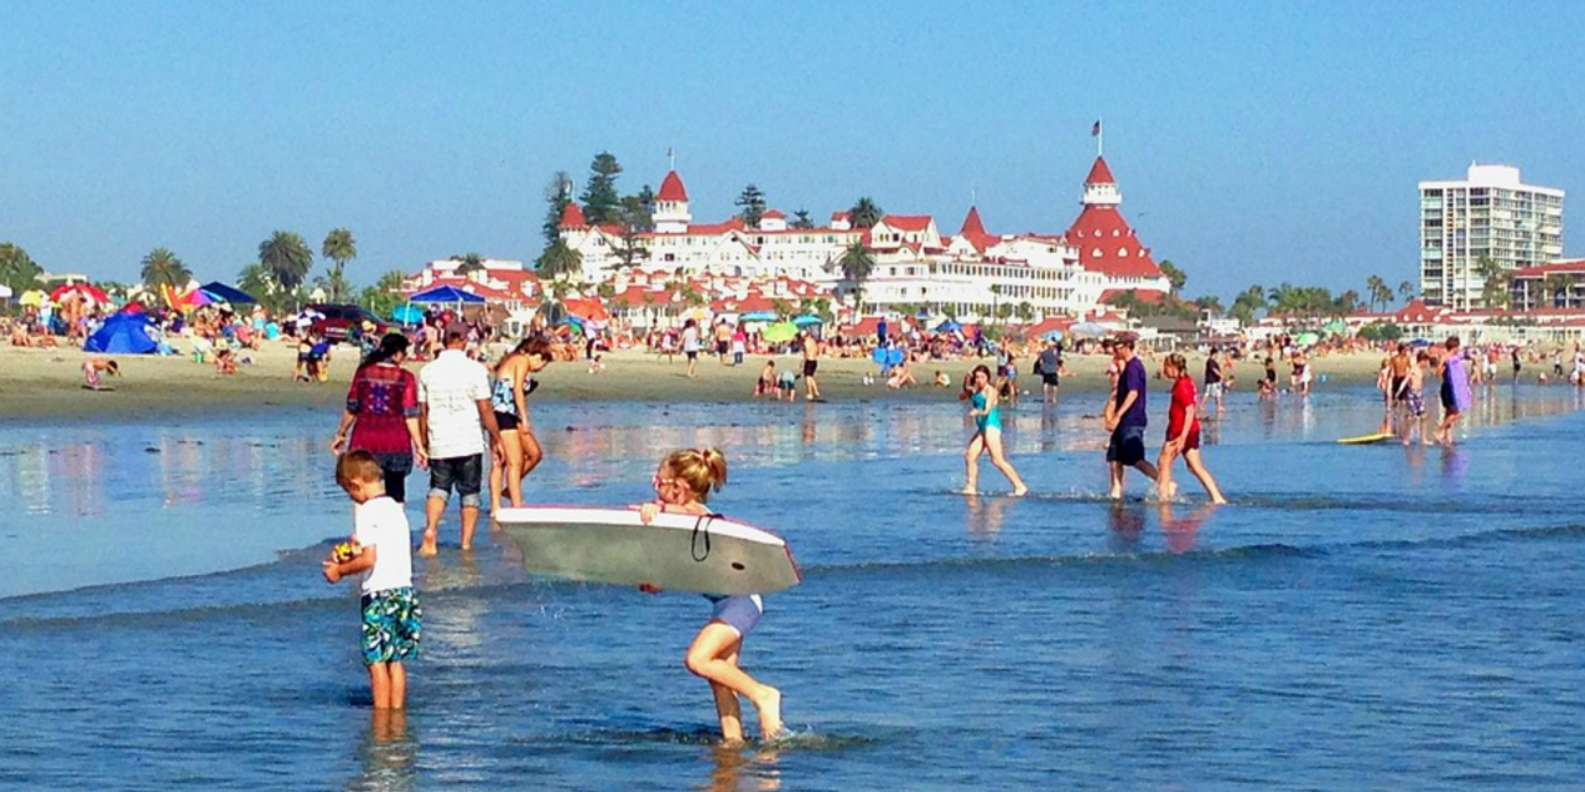 Try Stand-up Paddle Boarding